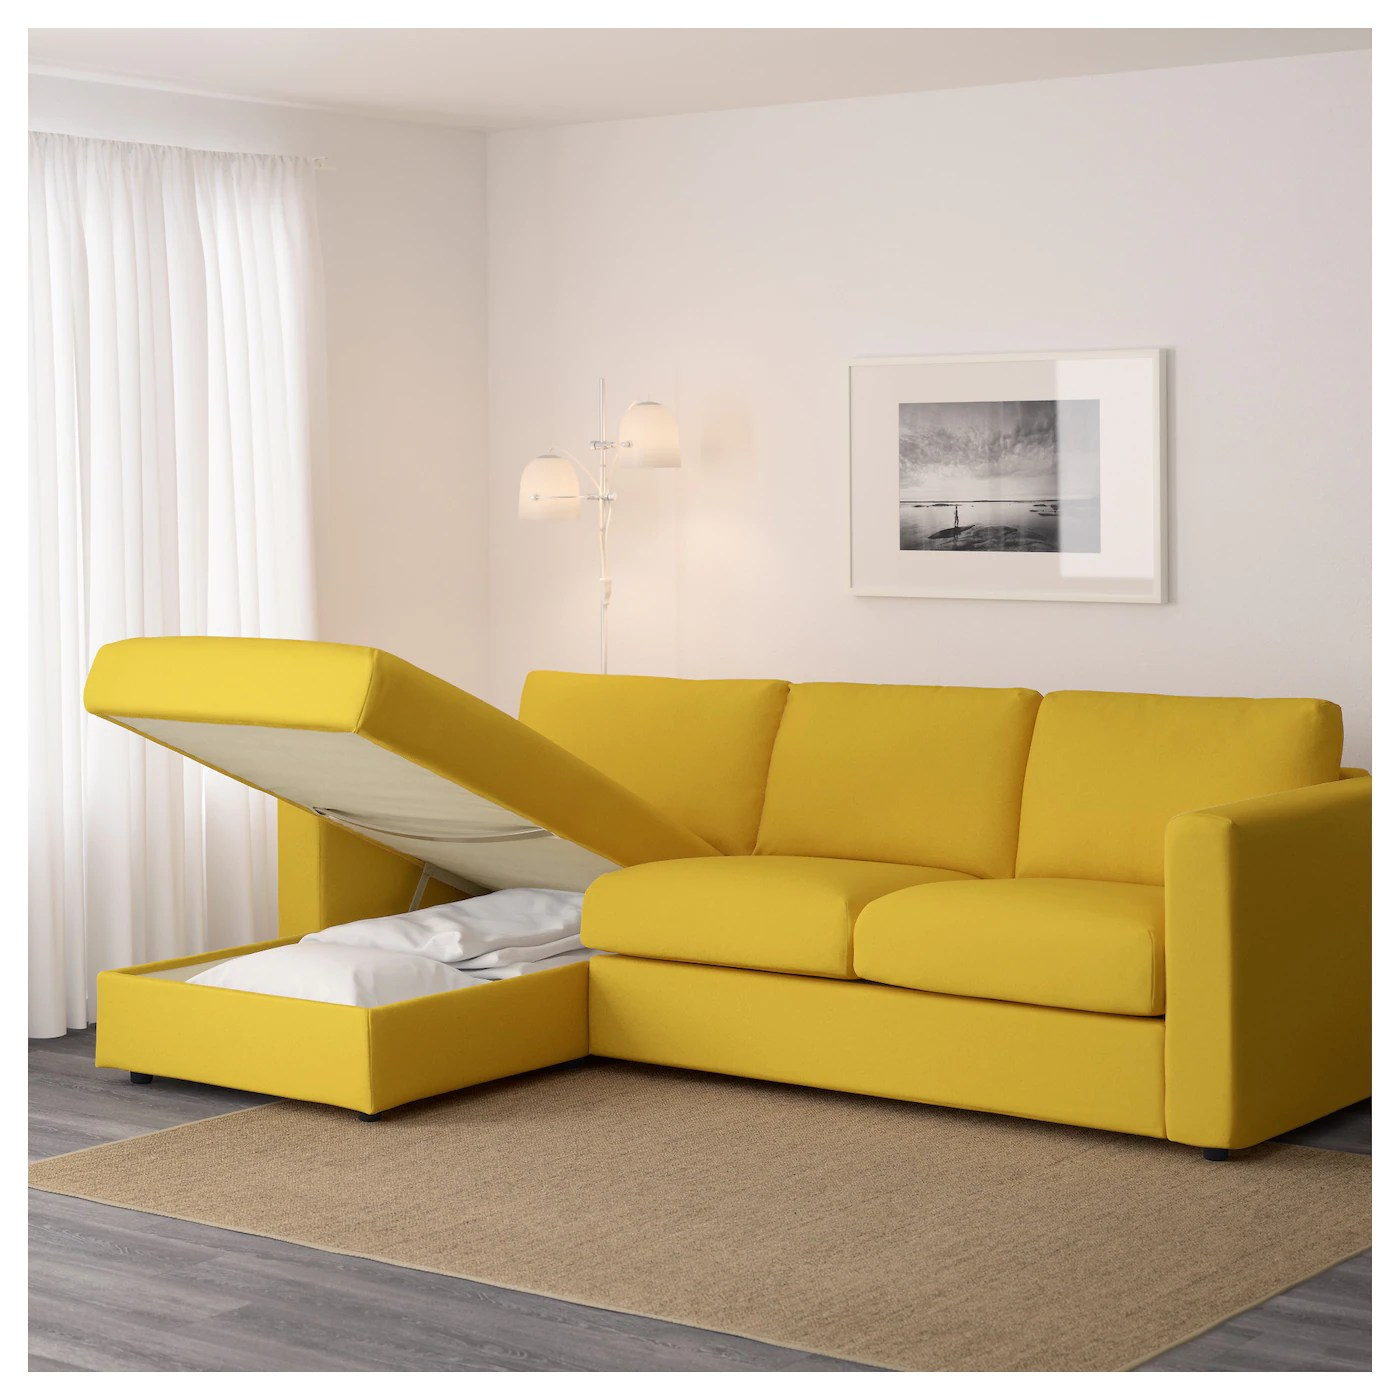 VIMLE 3 Seat Sofa With Chaise Longuegrsbo Golden Yellow